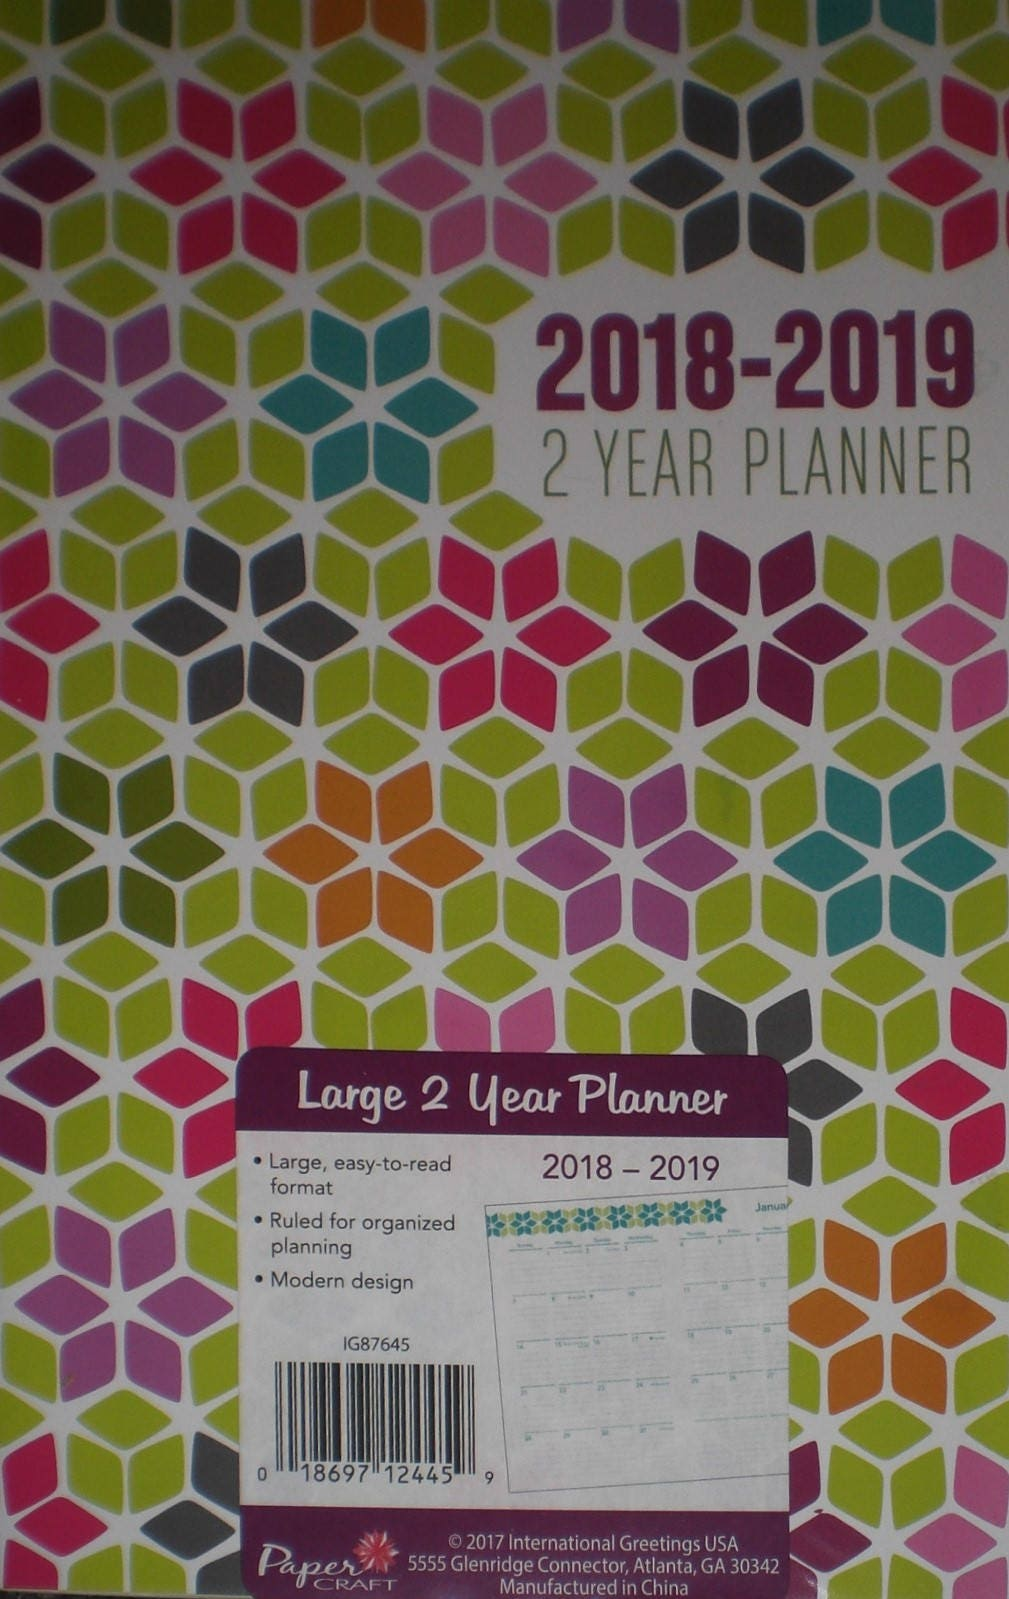 Diamond Flower Petals 2018 2019 2 Year Planner Scheduler